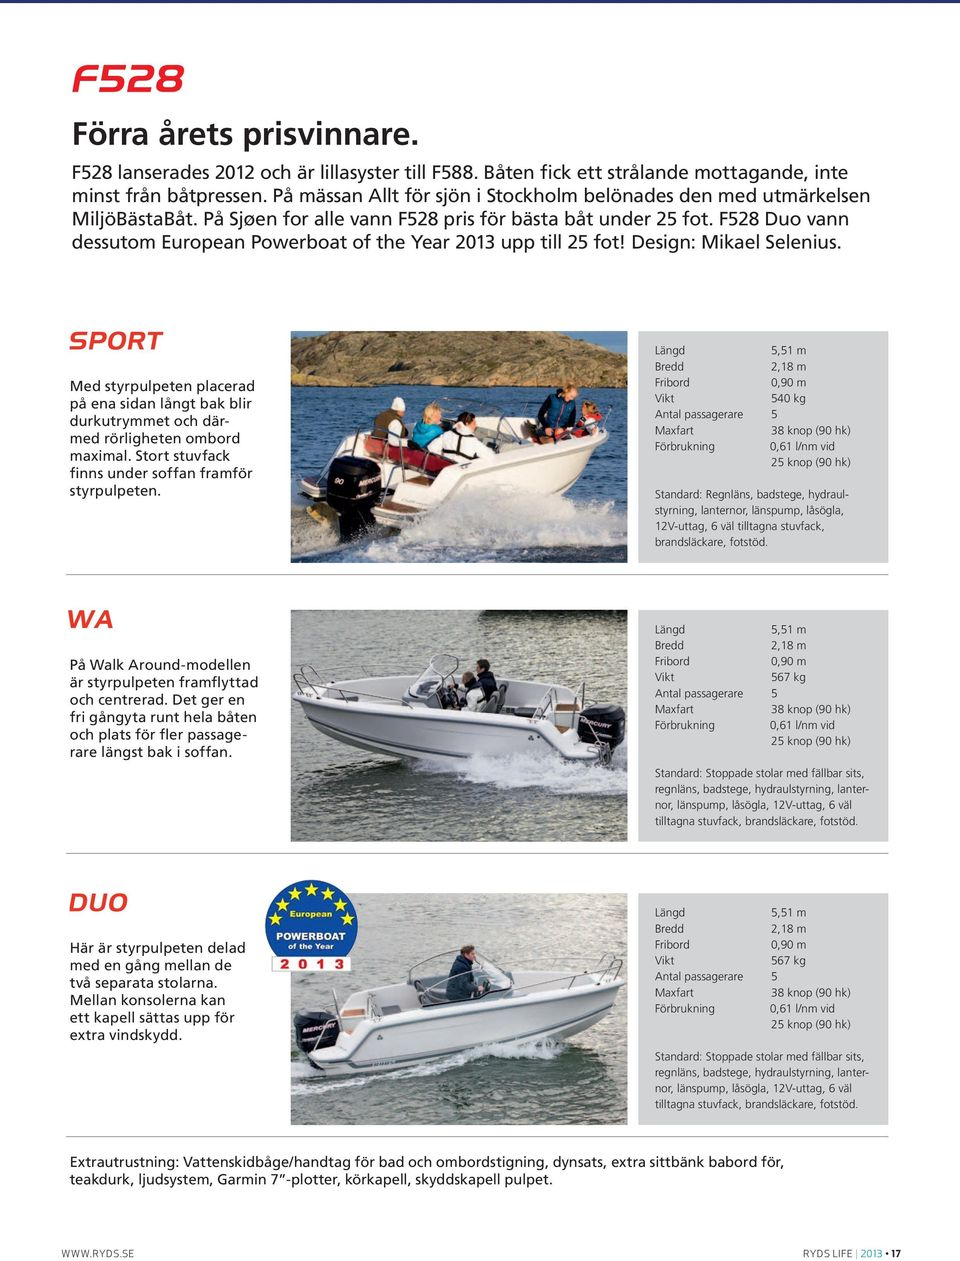 F528 Duo vann dessutom European Powerboat of the Year 2013 upp till 25 fot! Design: Mikael Selenius.